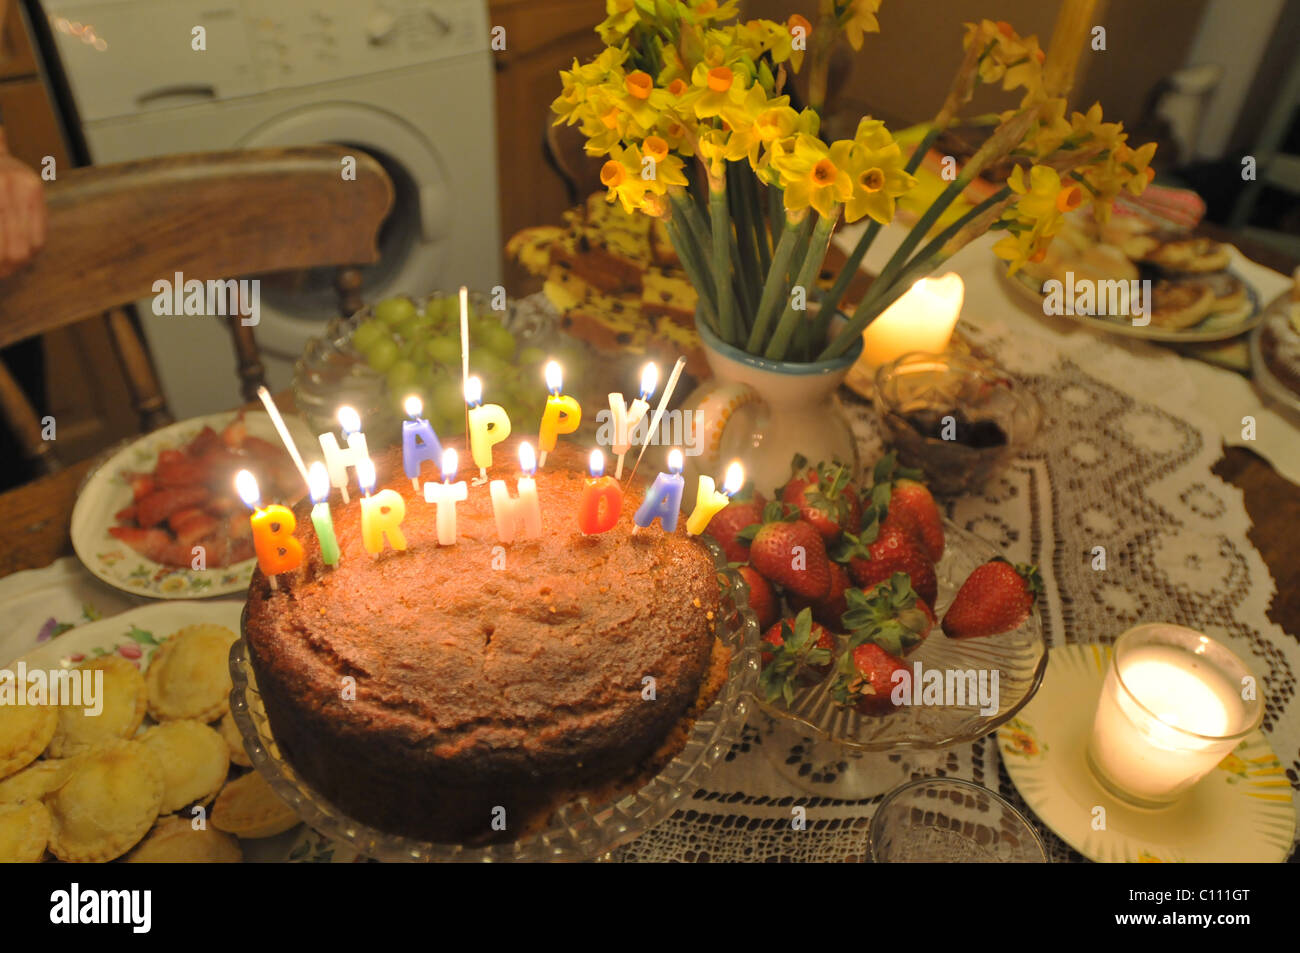 Admirable A Birthday Cake Made By A 12 Year Old Stock Photo 35058600 Alamy Funny Birthday Cards Online Elaedamsfinfo